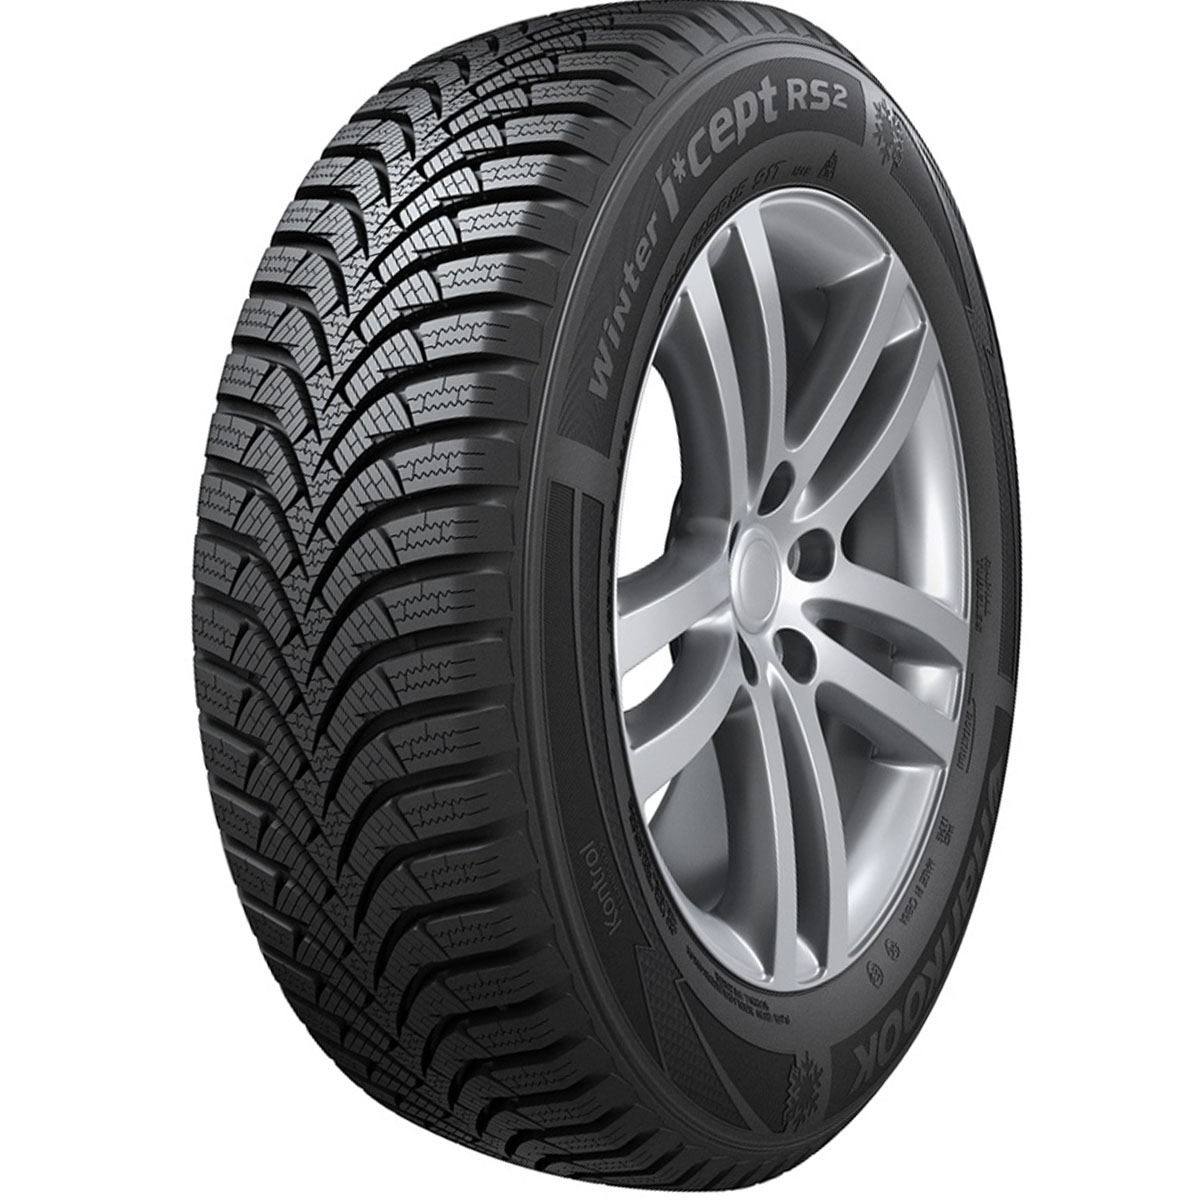 Anvelope Hankook Winter Icept Rs2 W452 185/55R15 82T Iarna imagine